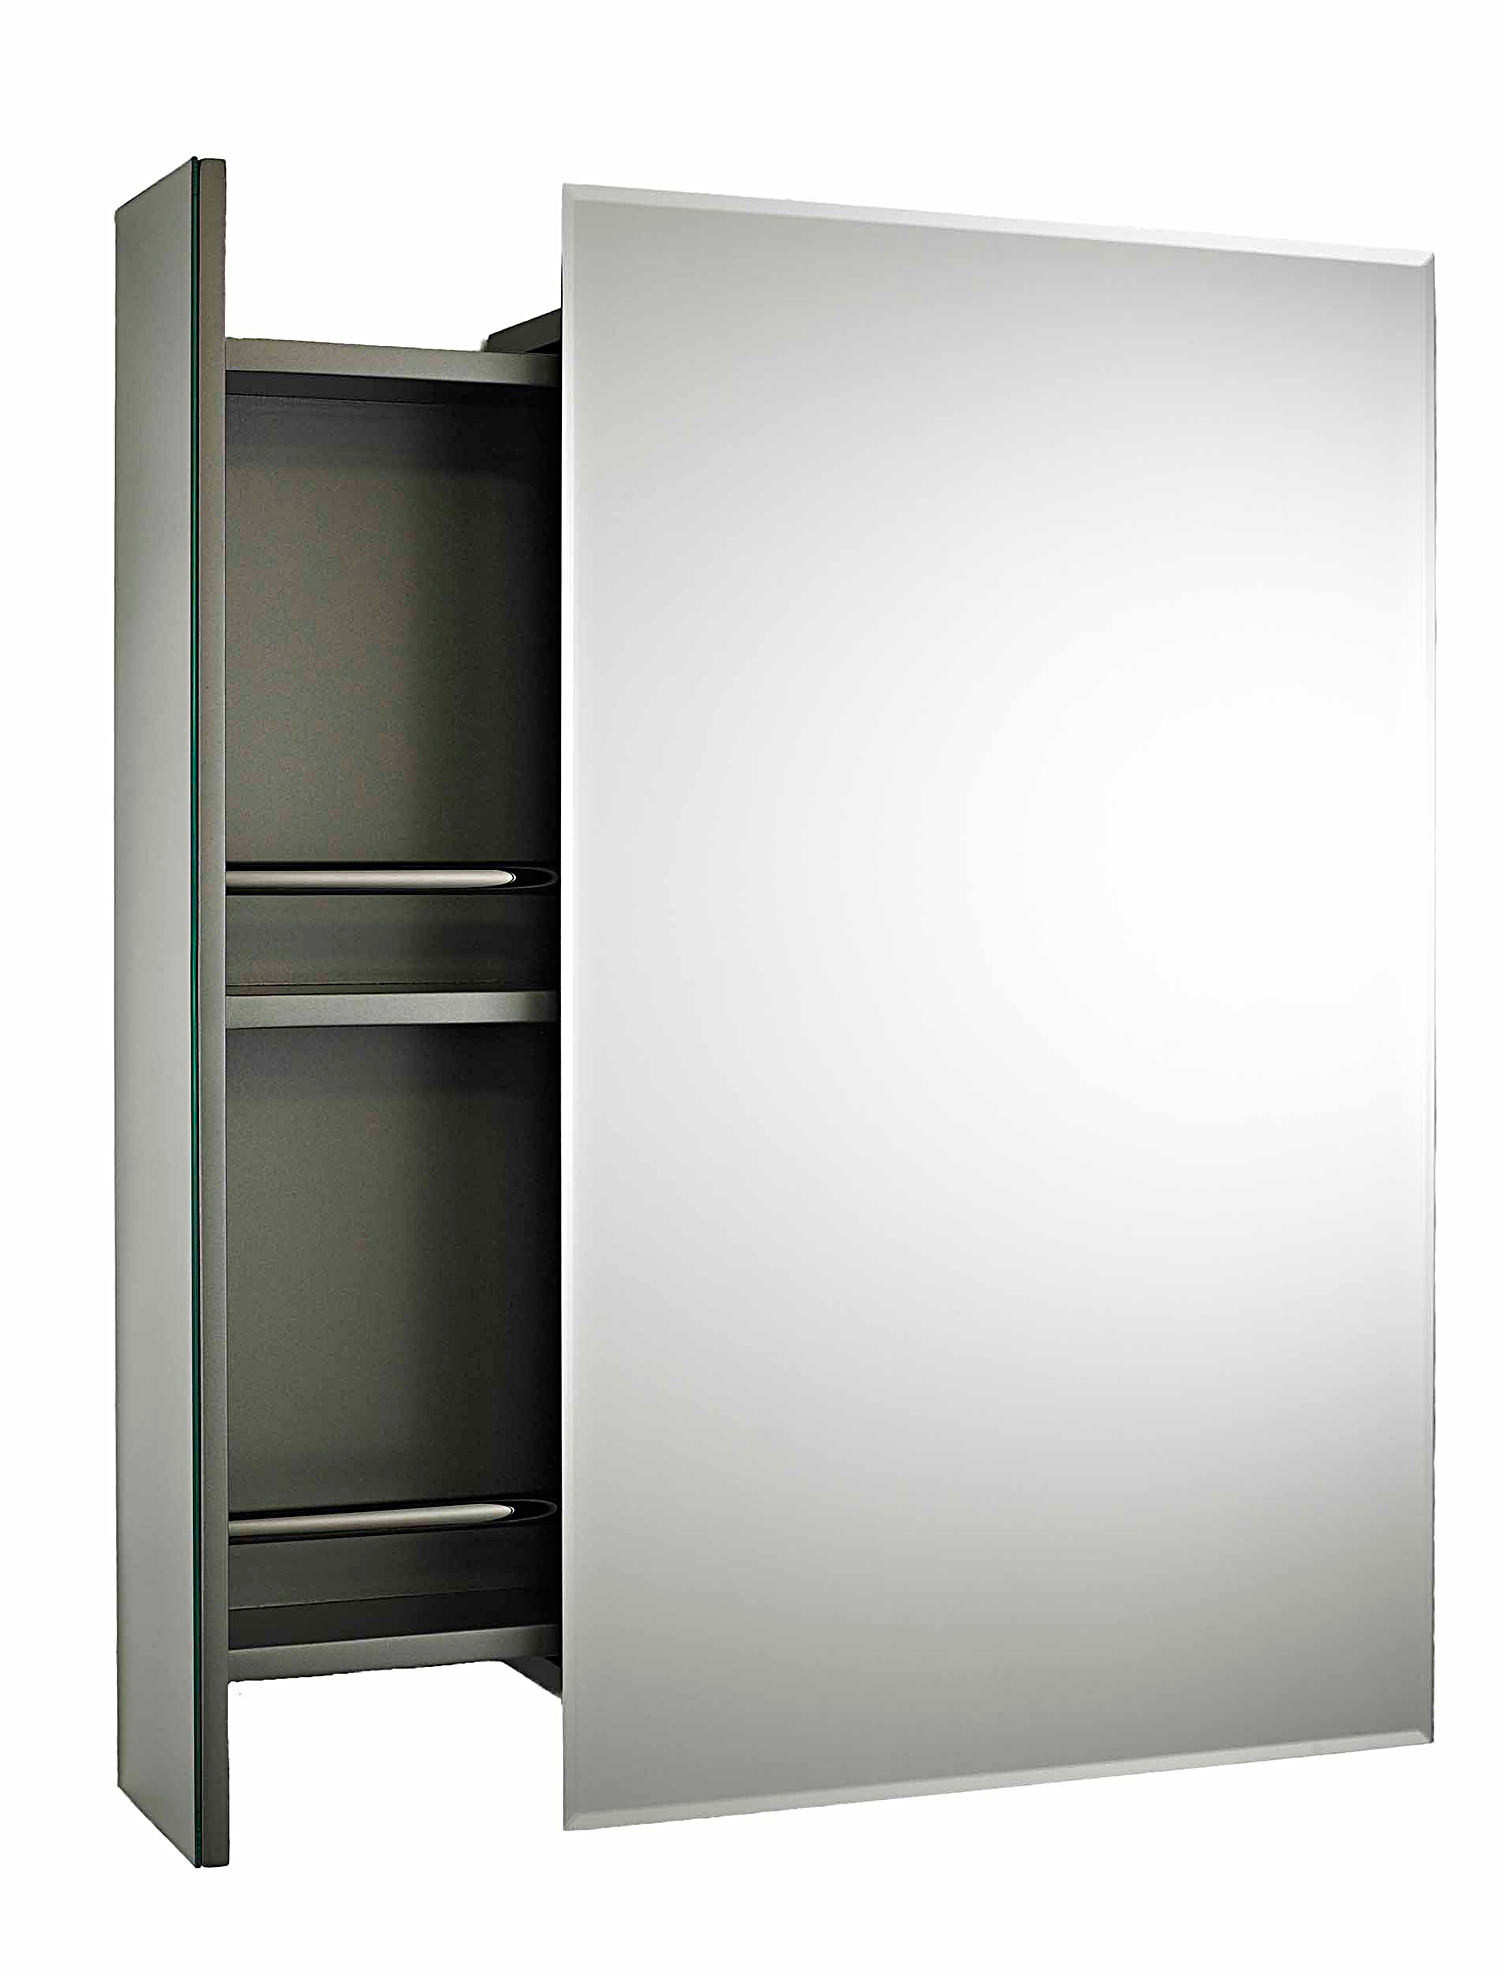 Inset Kitchen Cabinets Lauren Intrigue Side Opening Mirrored Cabinet 460 X 750mm